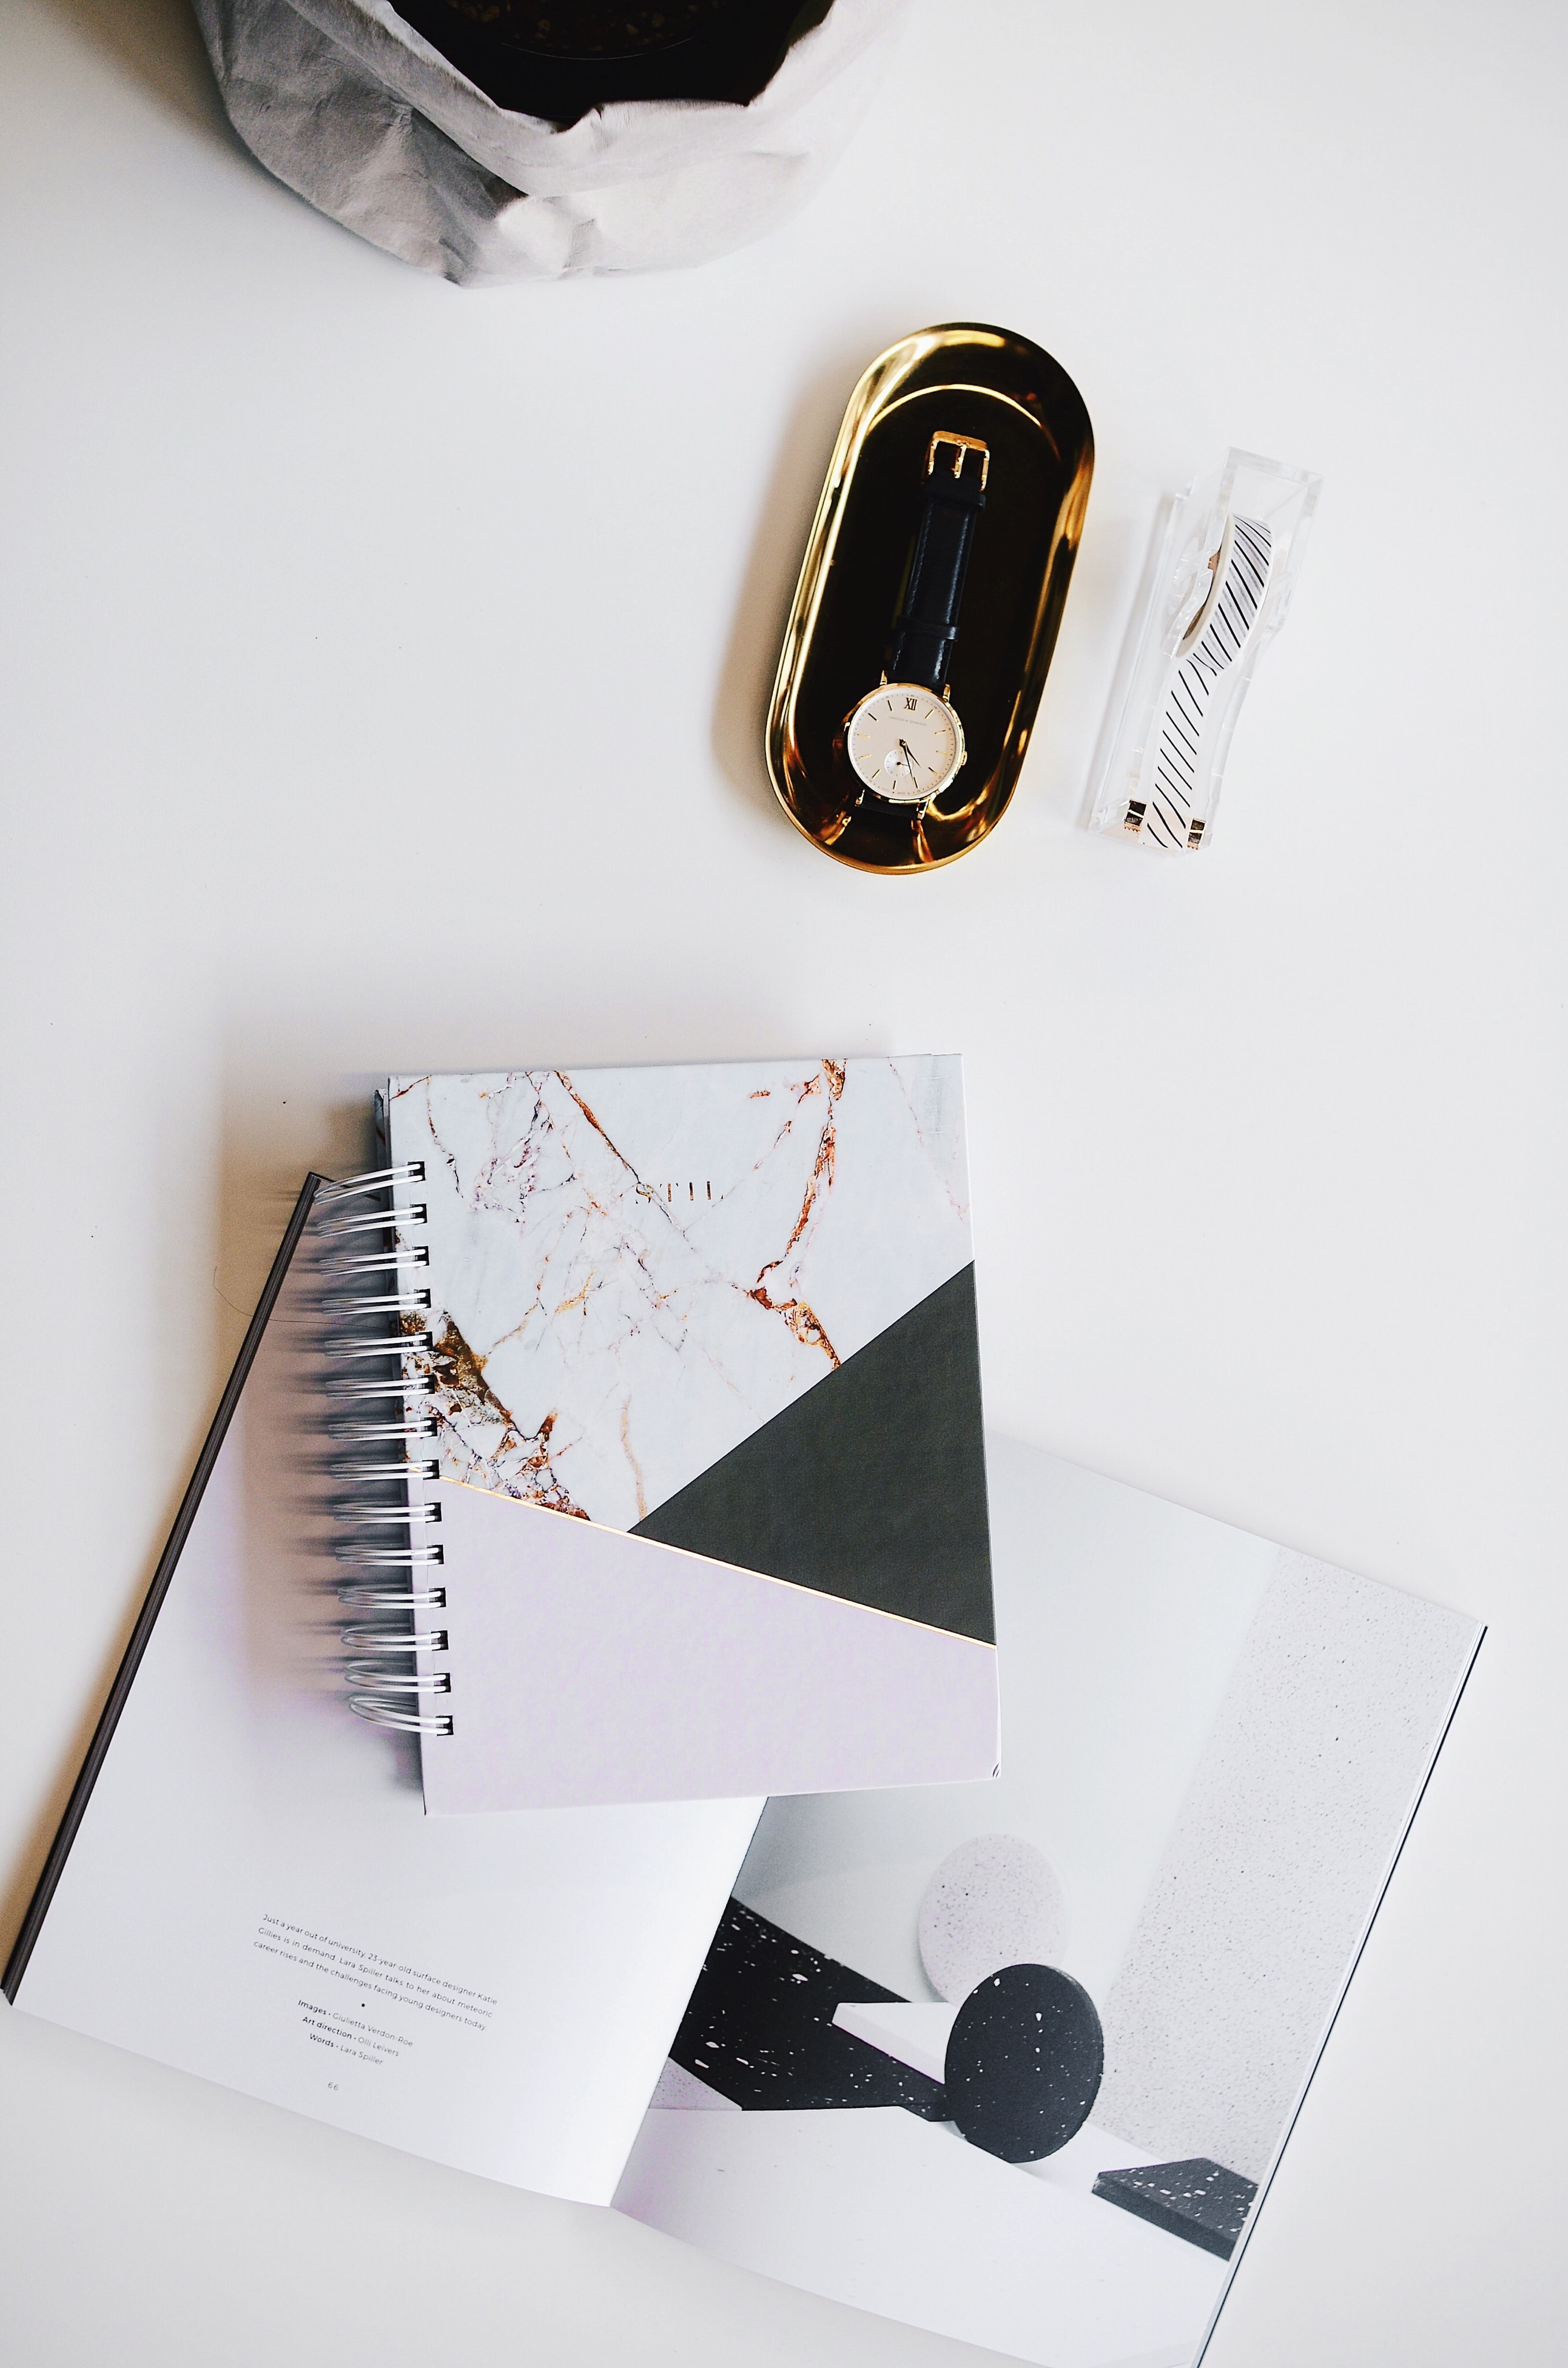 A flatlay of a watch, book, planner, and tape dispenser on a table